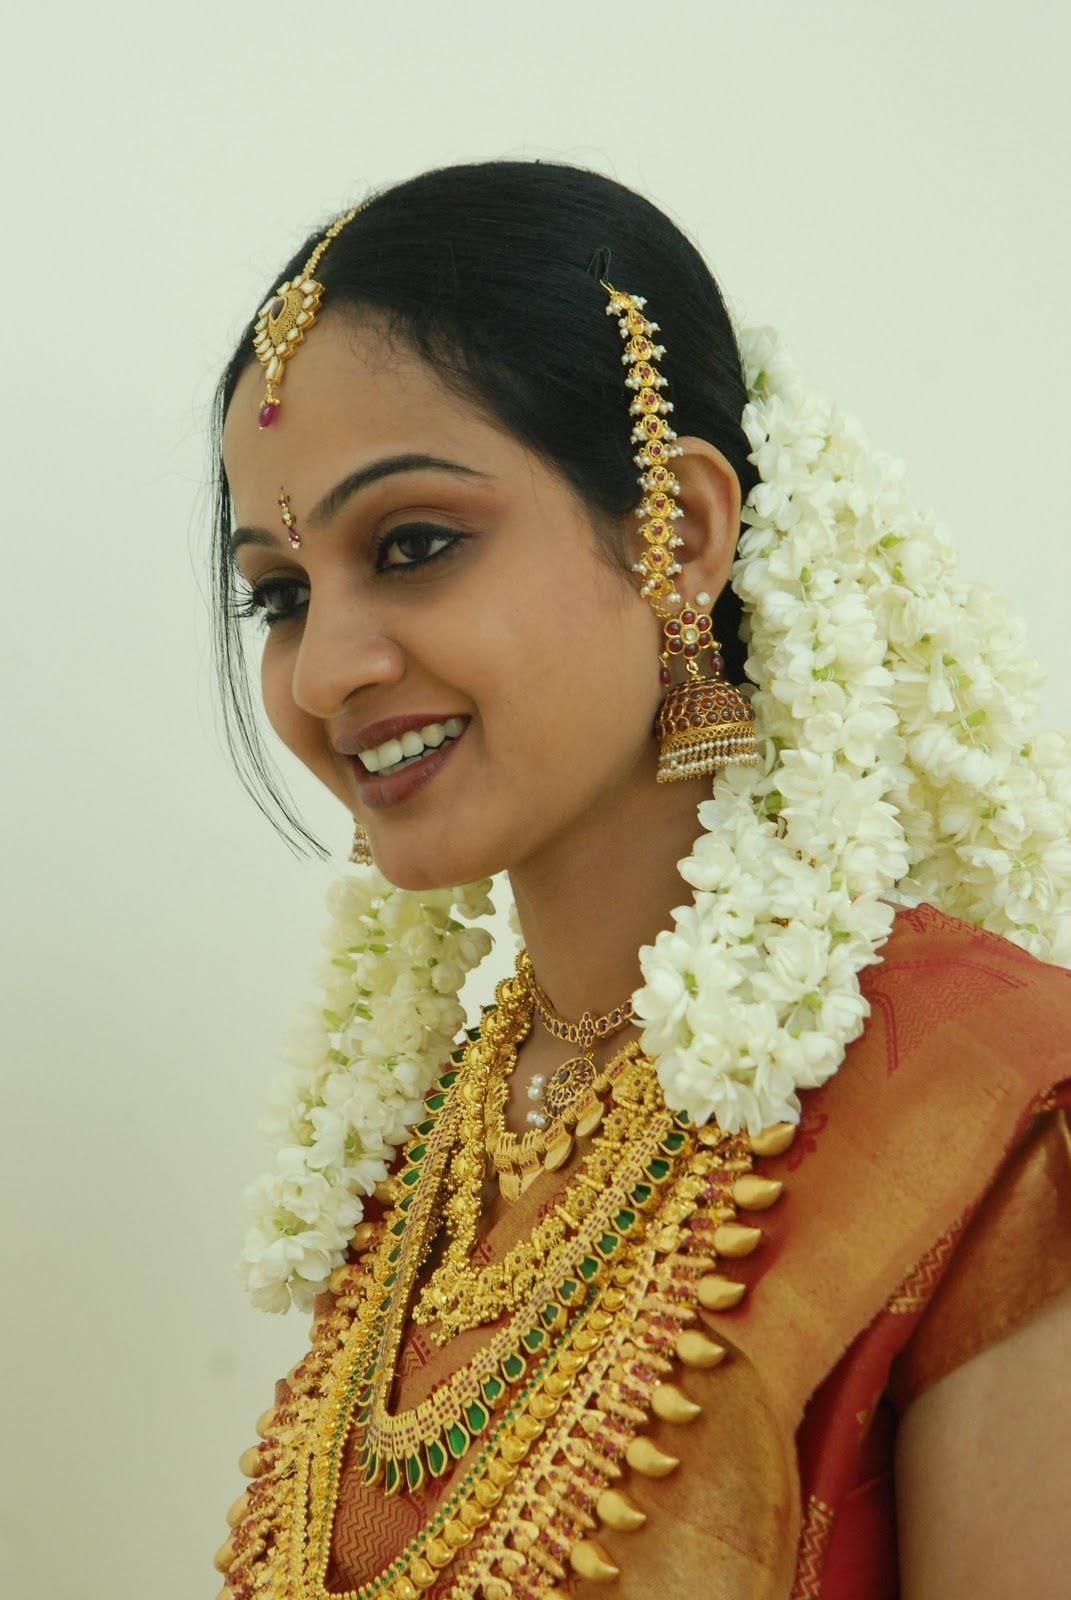 malayalee bride with gold jewelry and jasmine flowers